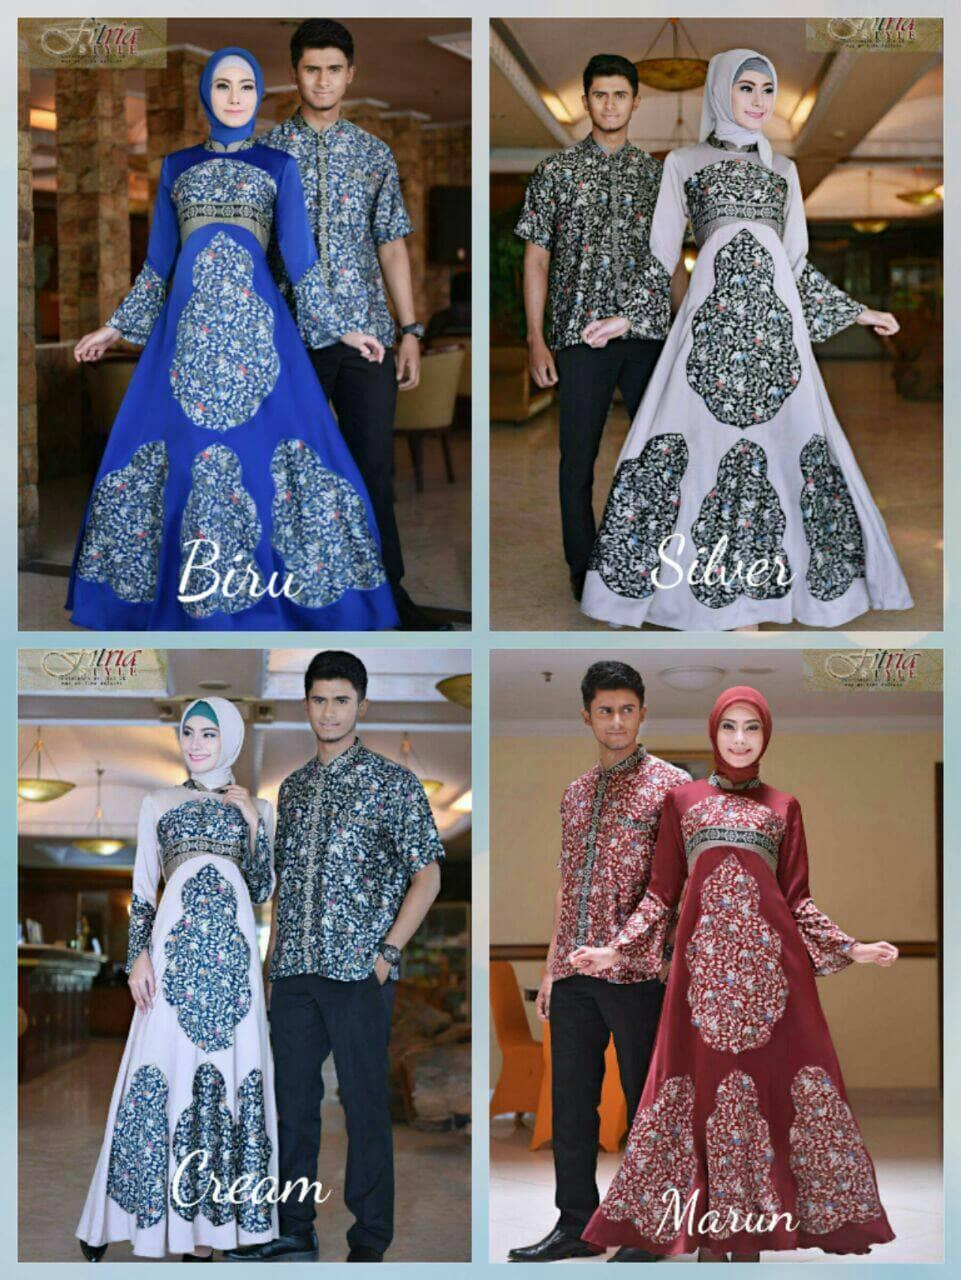 Hanan & Haneen by FItria style - Couple